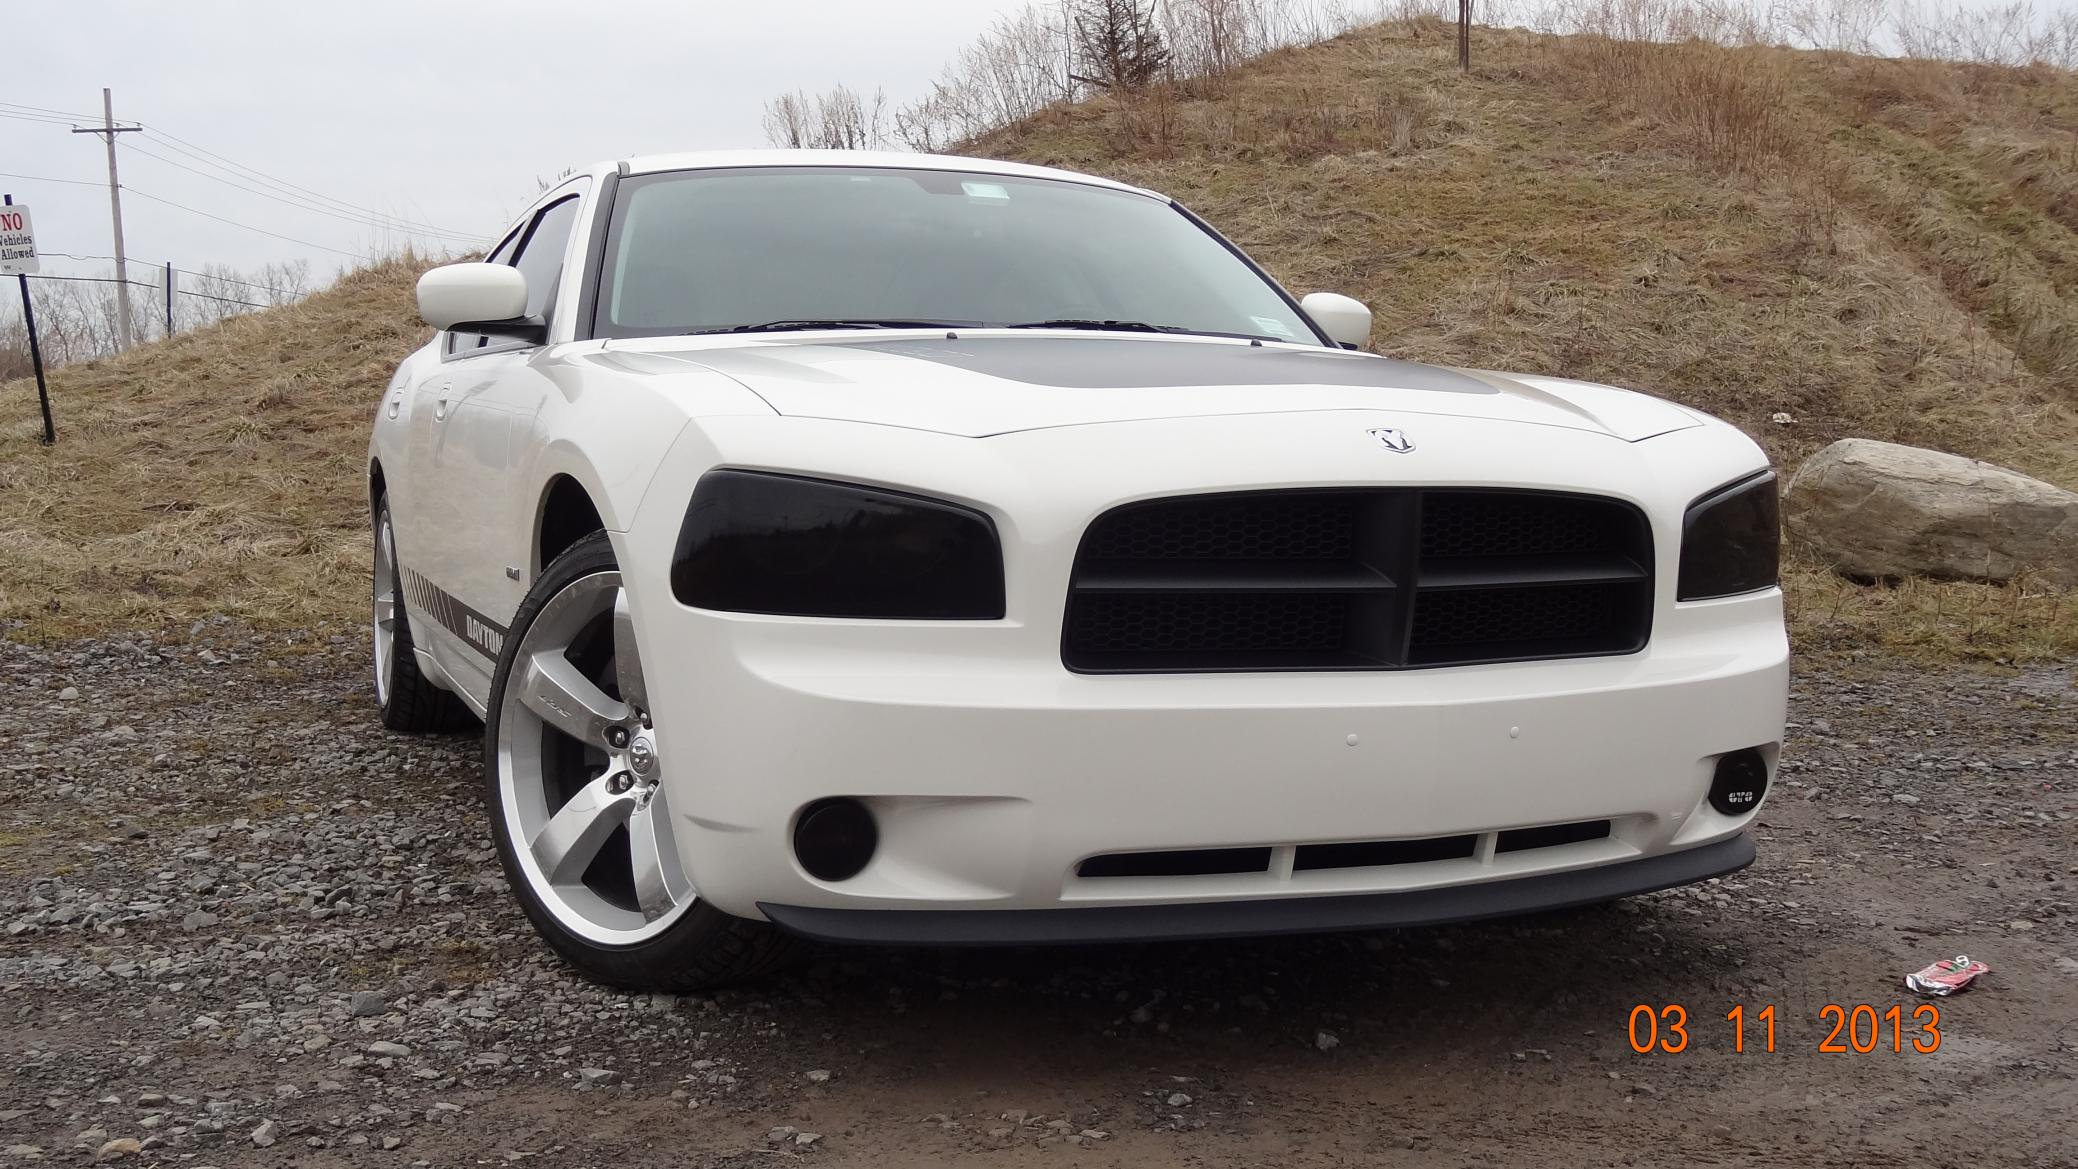 of dodge left nj cert for charger title en auctions somerville auto salvage copart lot carfinder black on sale view in online se